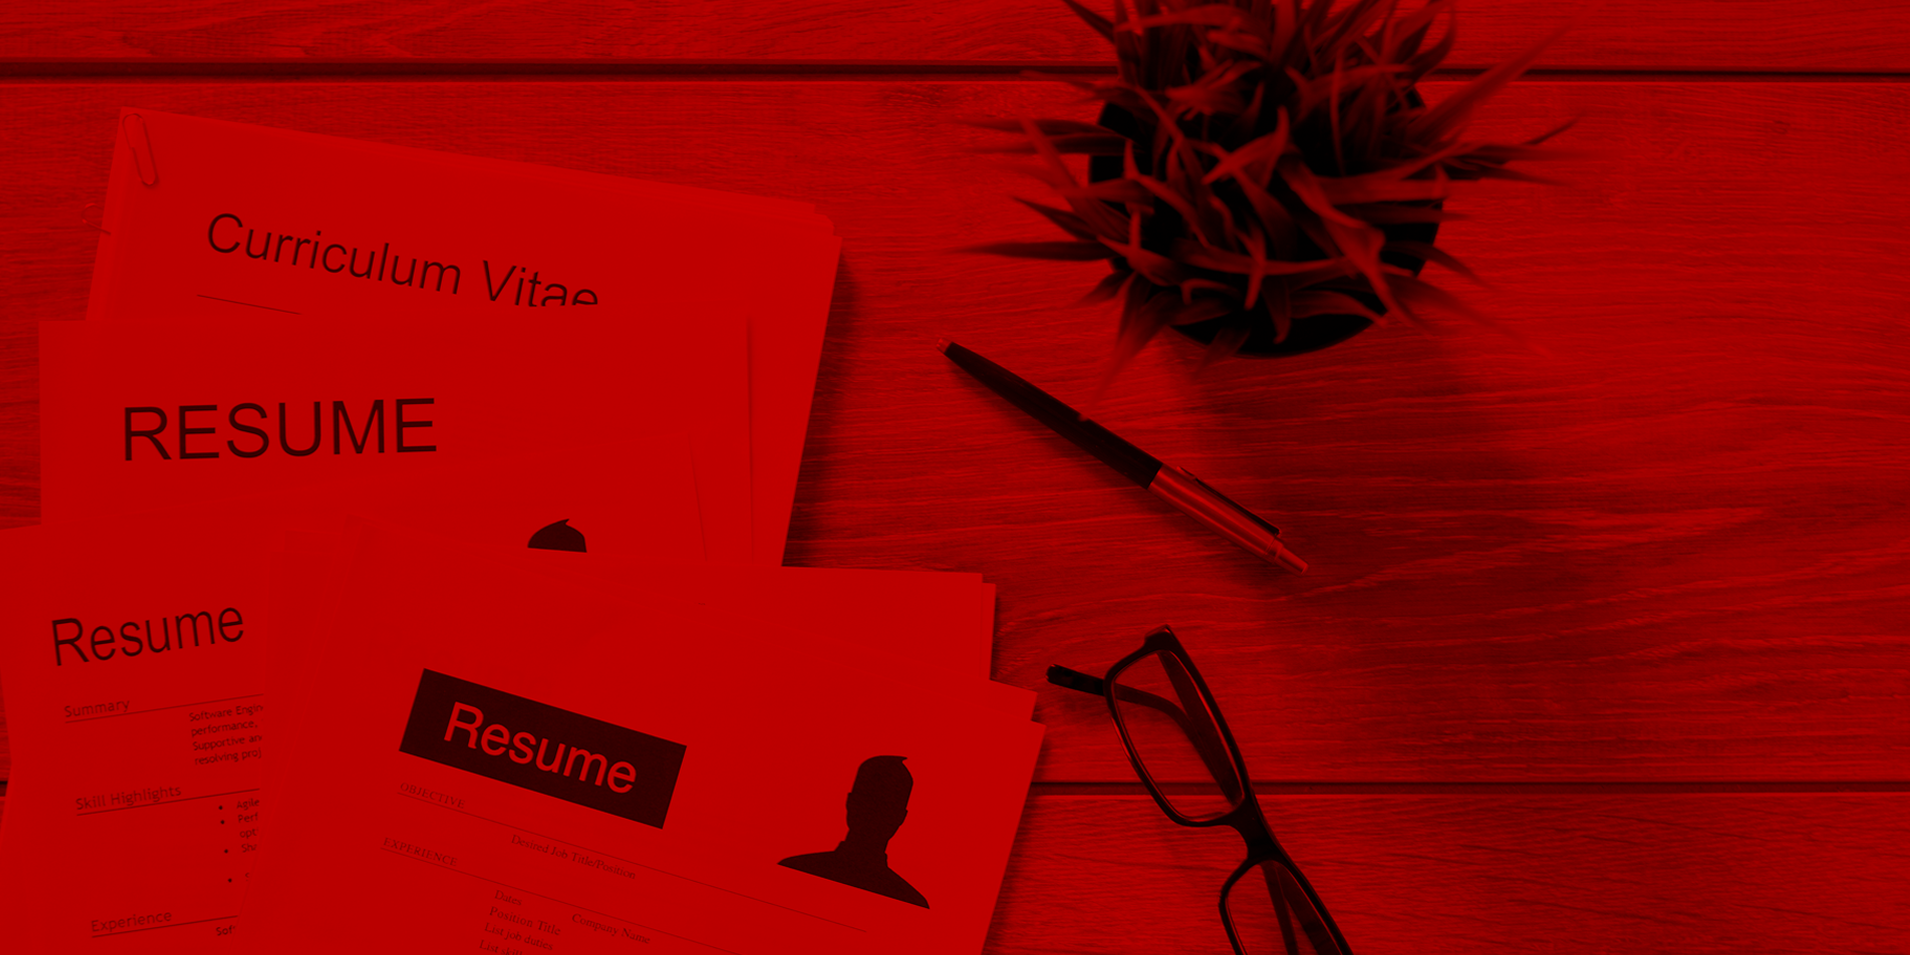 Non-native English speakers: Avoid these CV/résumé mistakes